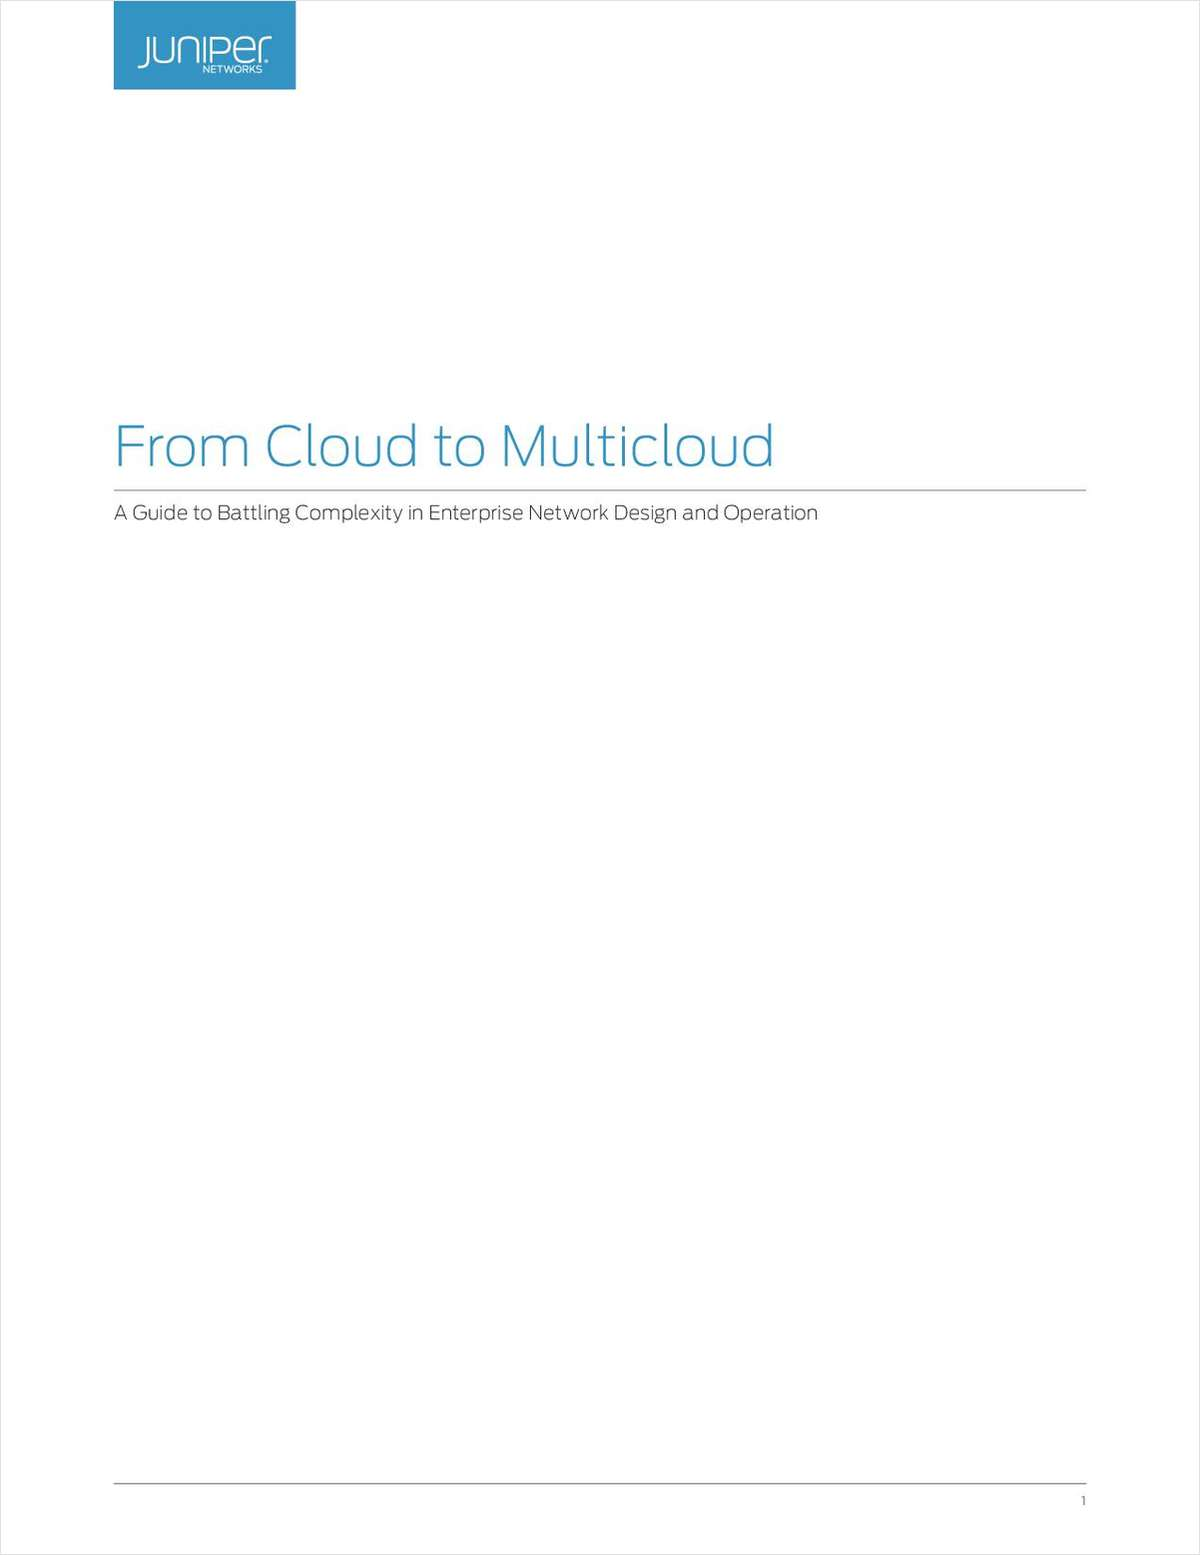 From Cloud to Multicloud: A Guide to Battling Complexity in Enterprise Network Design and Operation